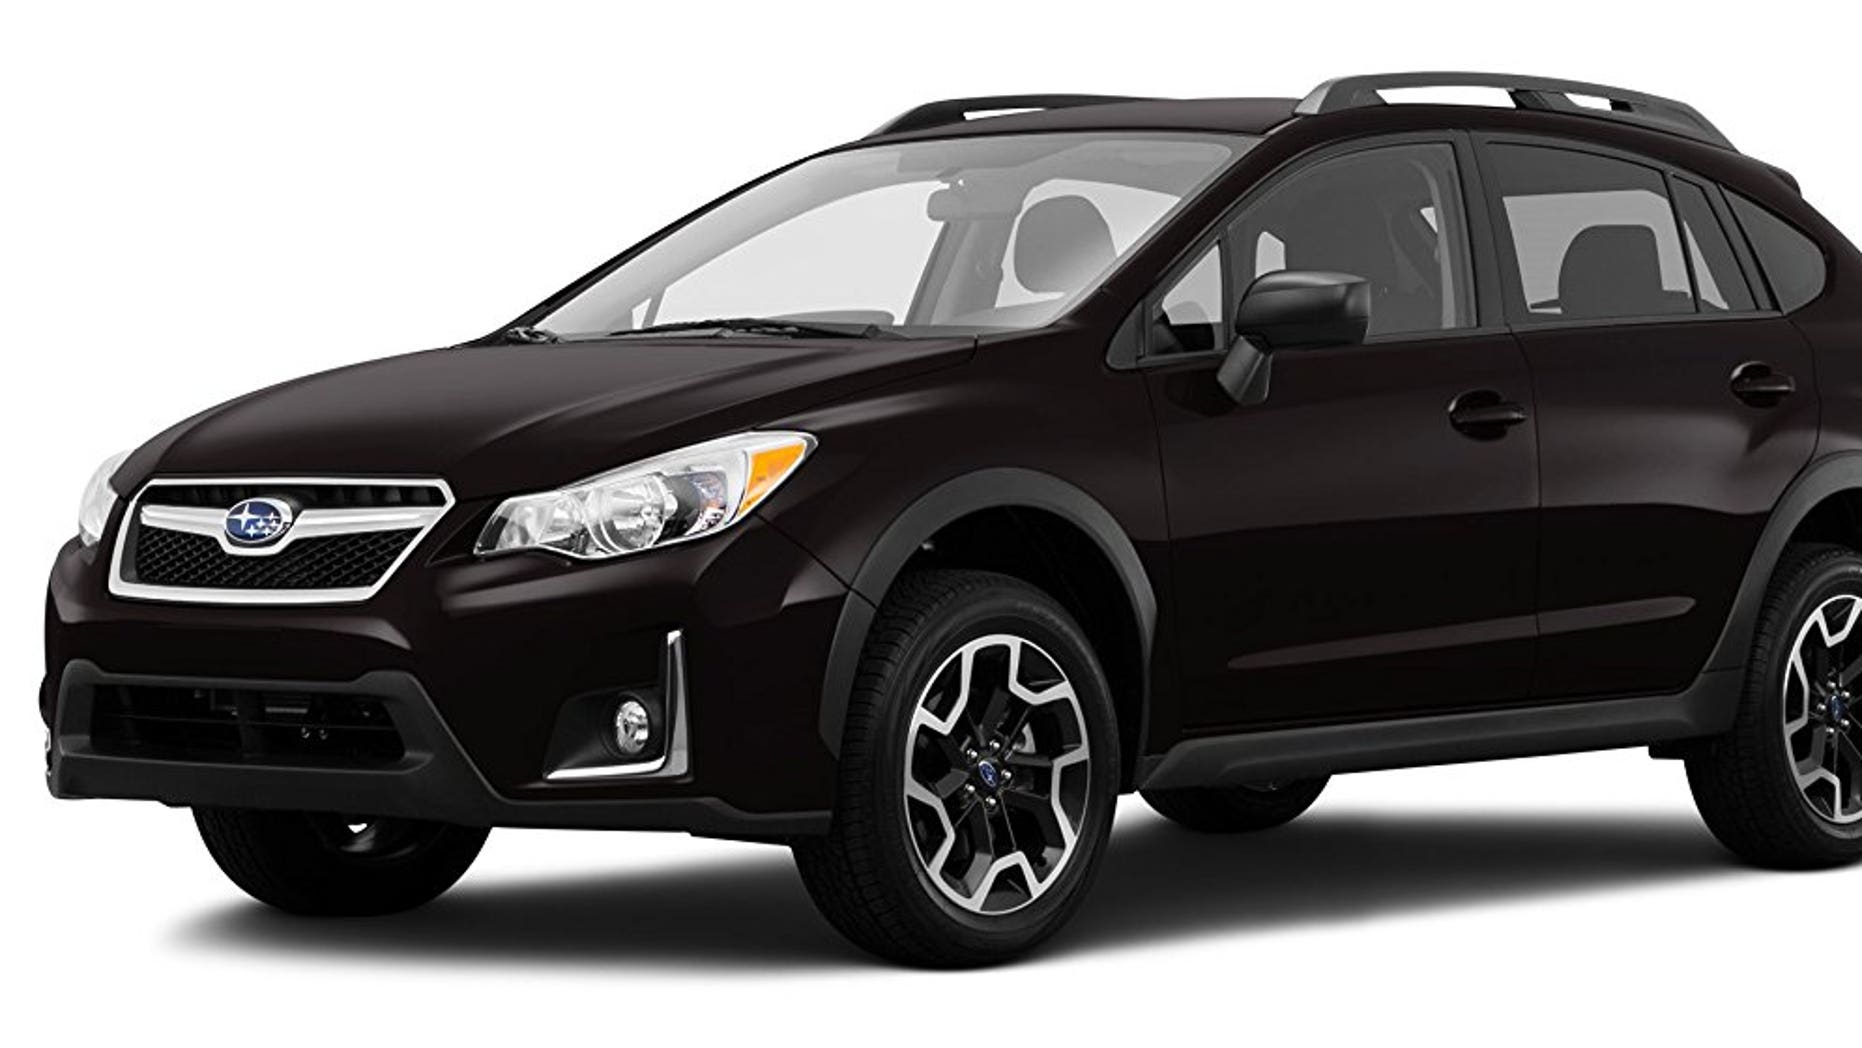 The 2017 Subaru Crosstrek is one of the affected models.